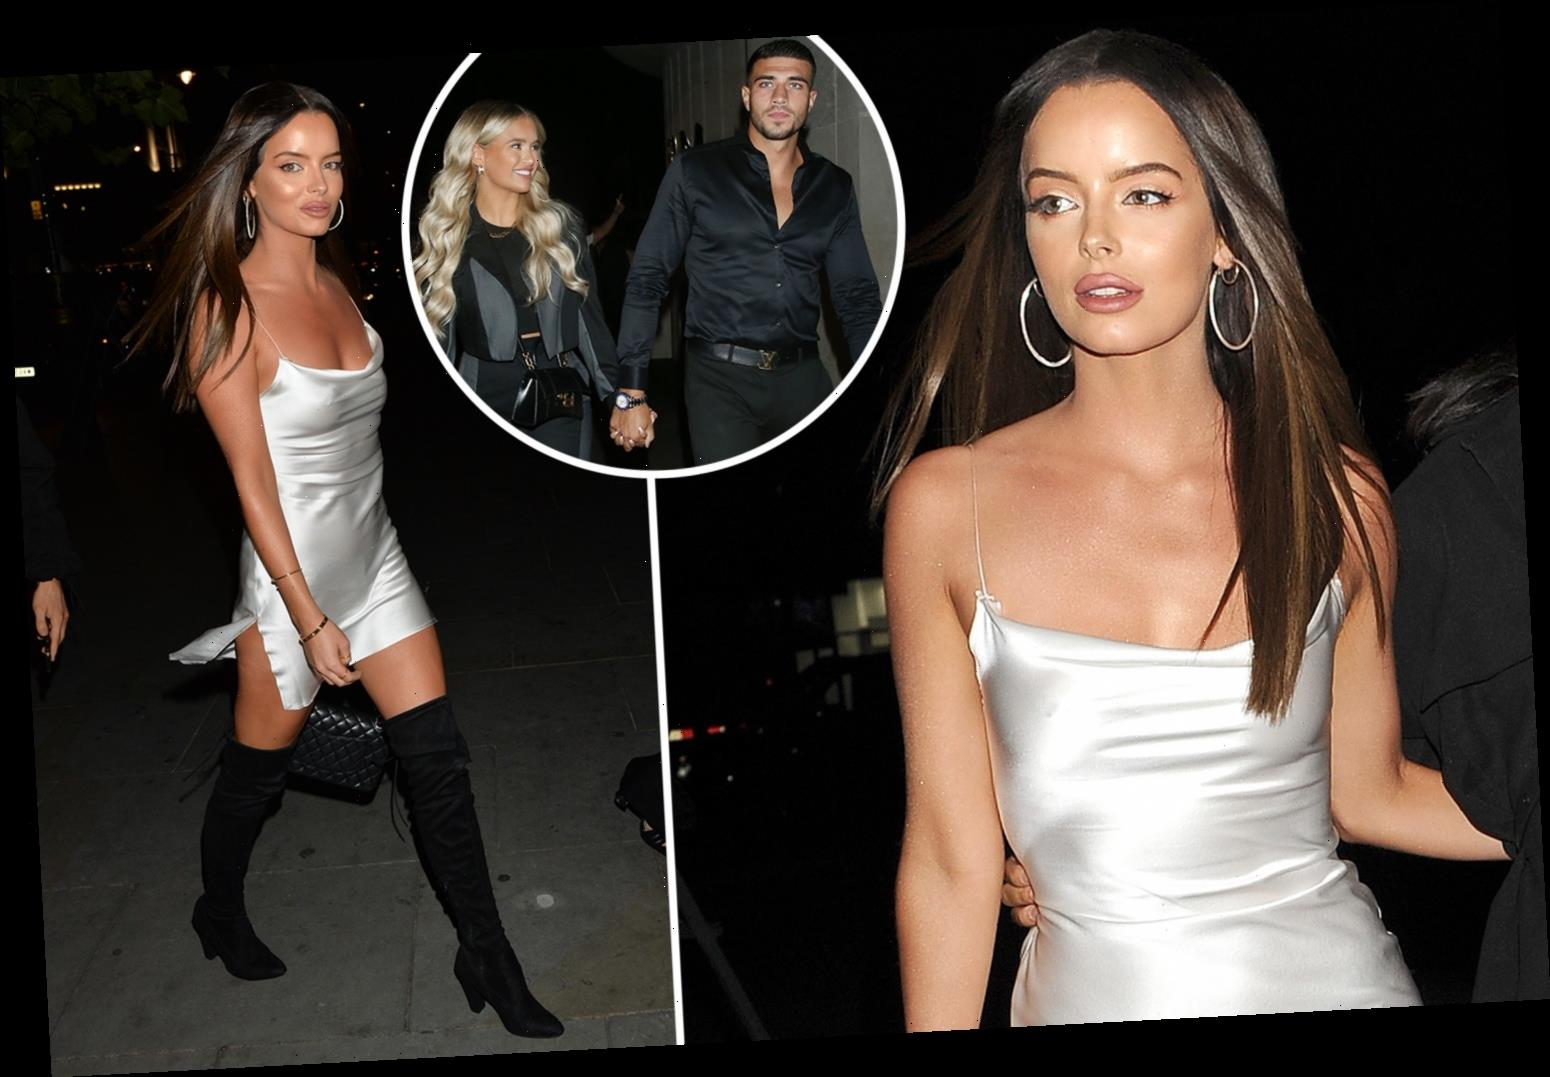 Maura Higgins stuns in a sexy silk dress for dinner out with Molly-Mae Hague and Tommy Fury